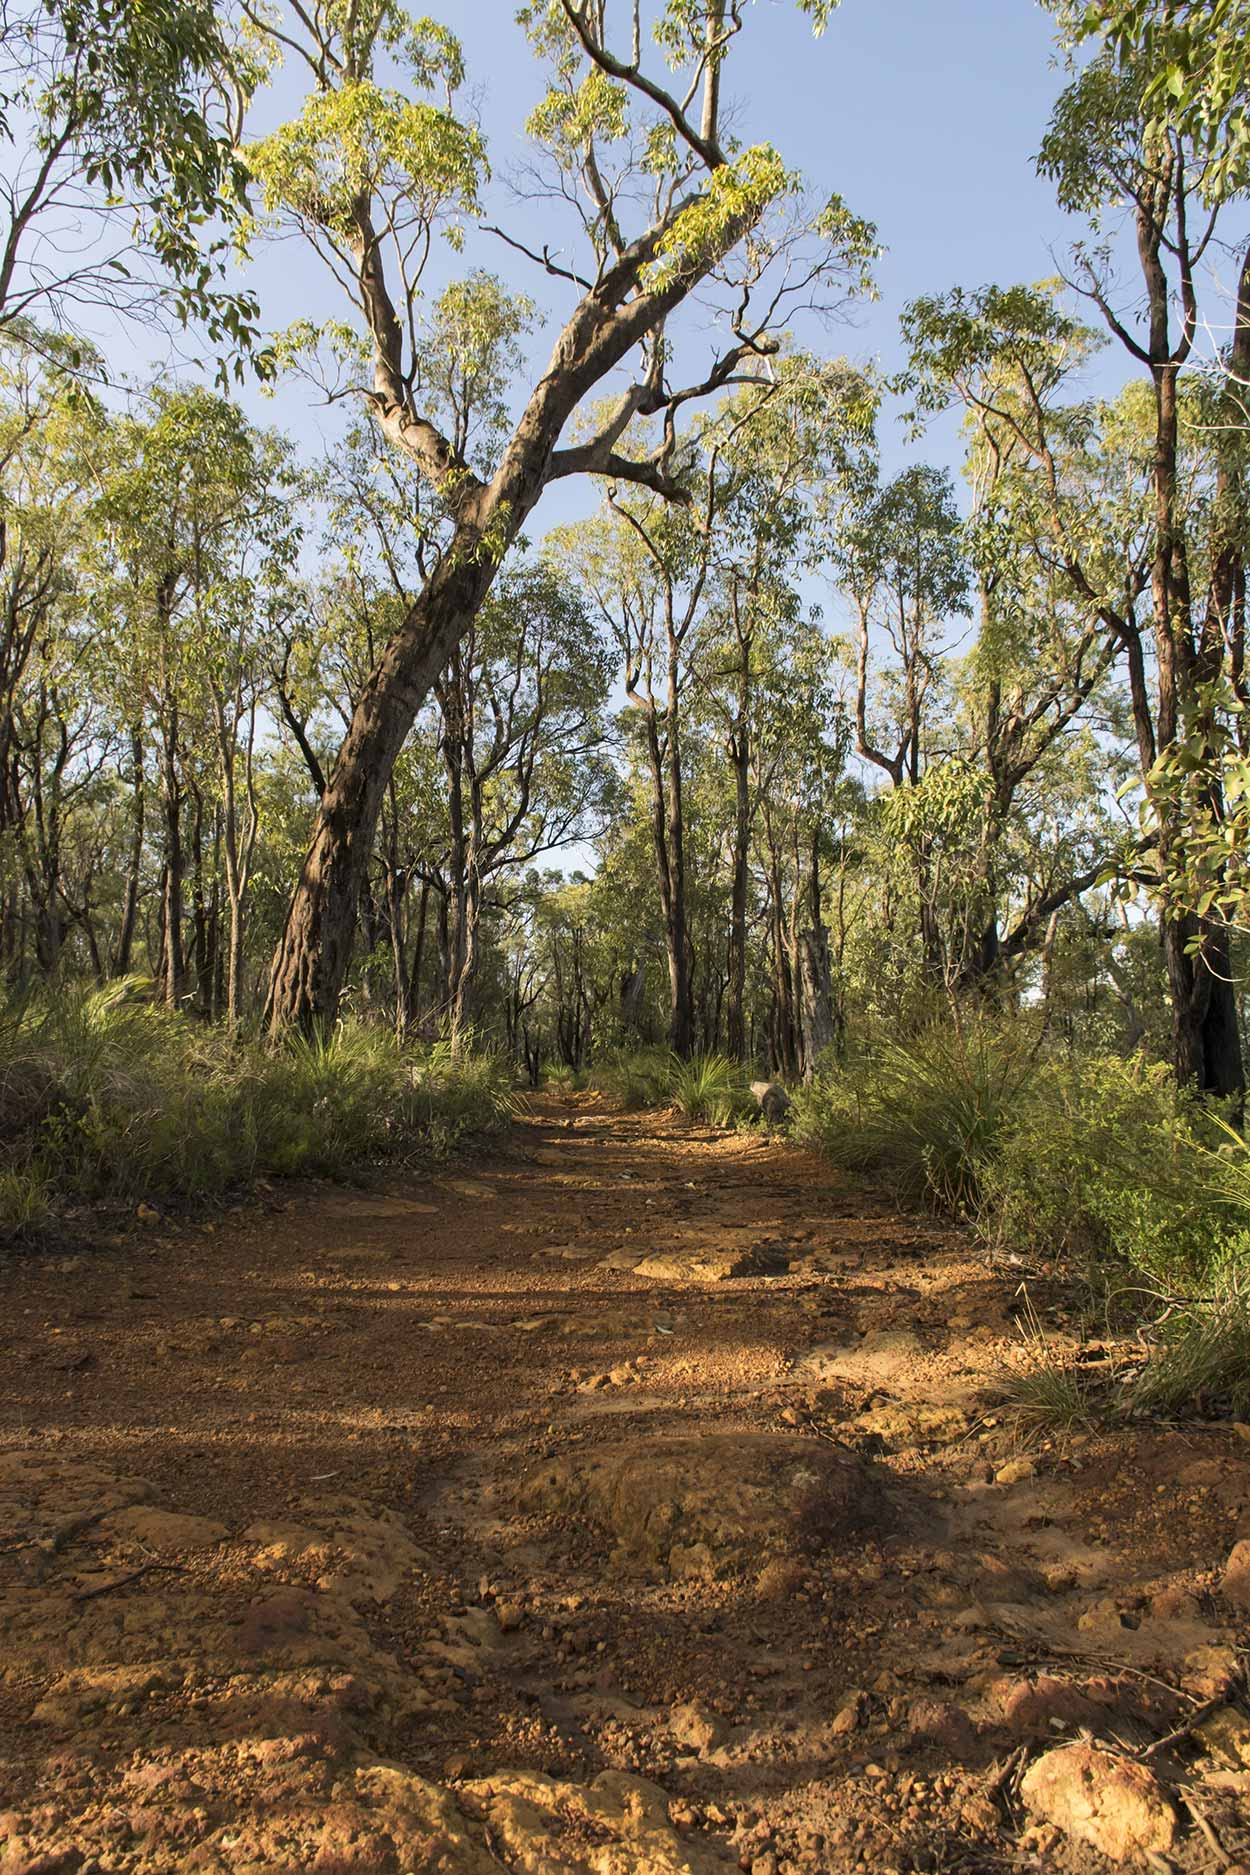 A path in the bushland, Lion's Lookout, Perth, Western Australia